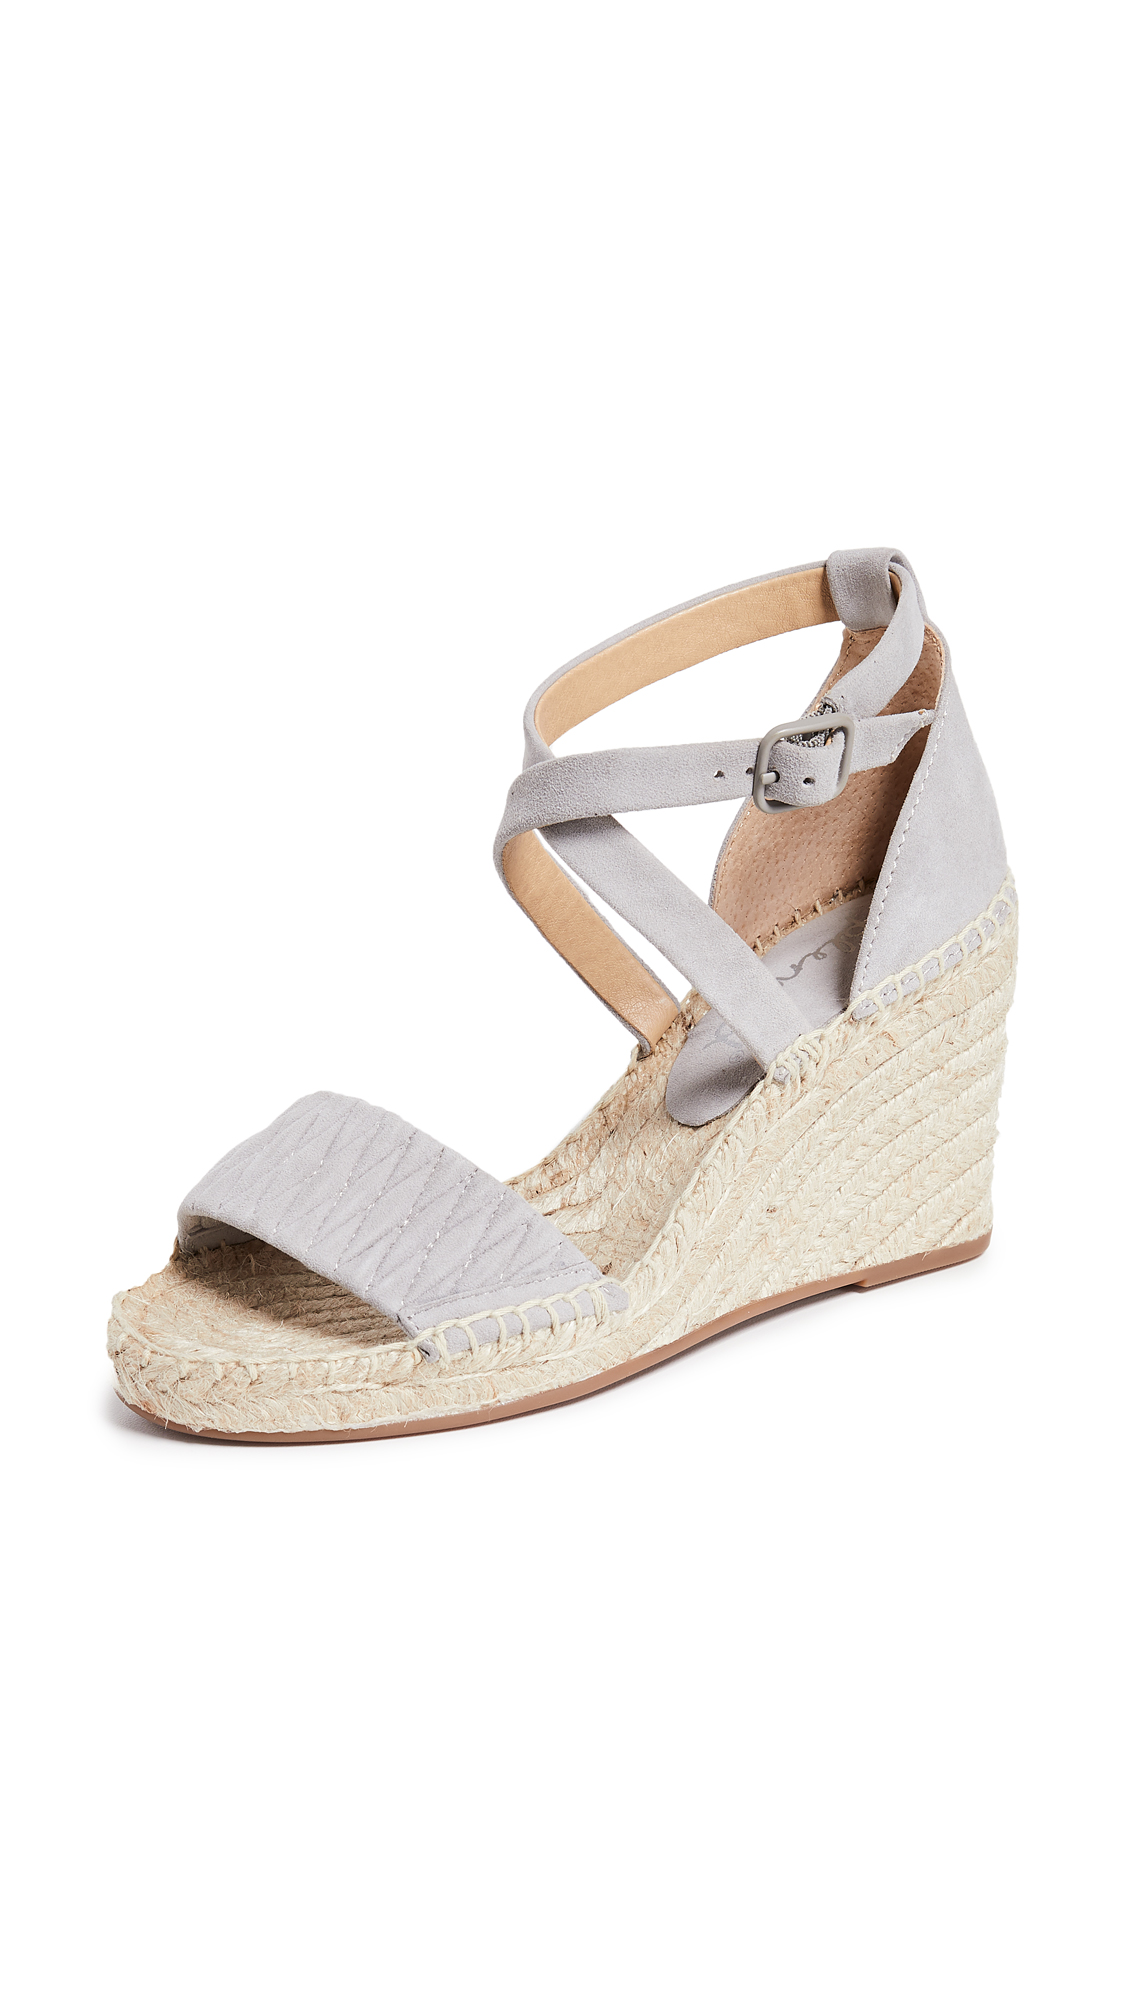 Splendid Sheri Wedge Espadrilles - Light Grey